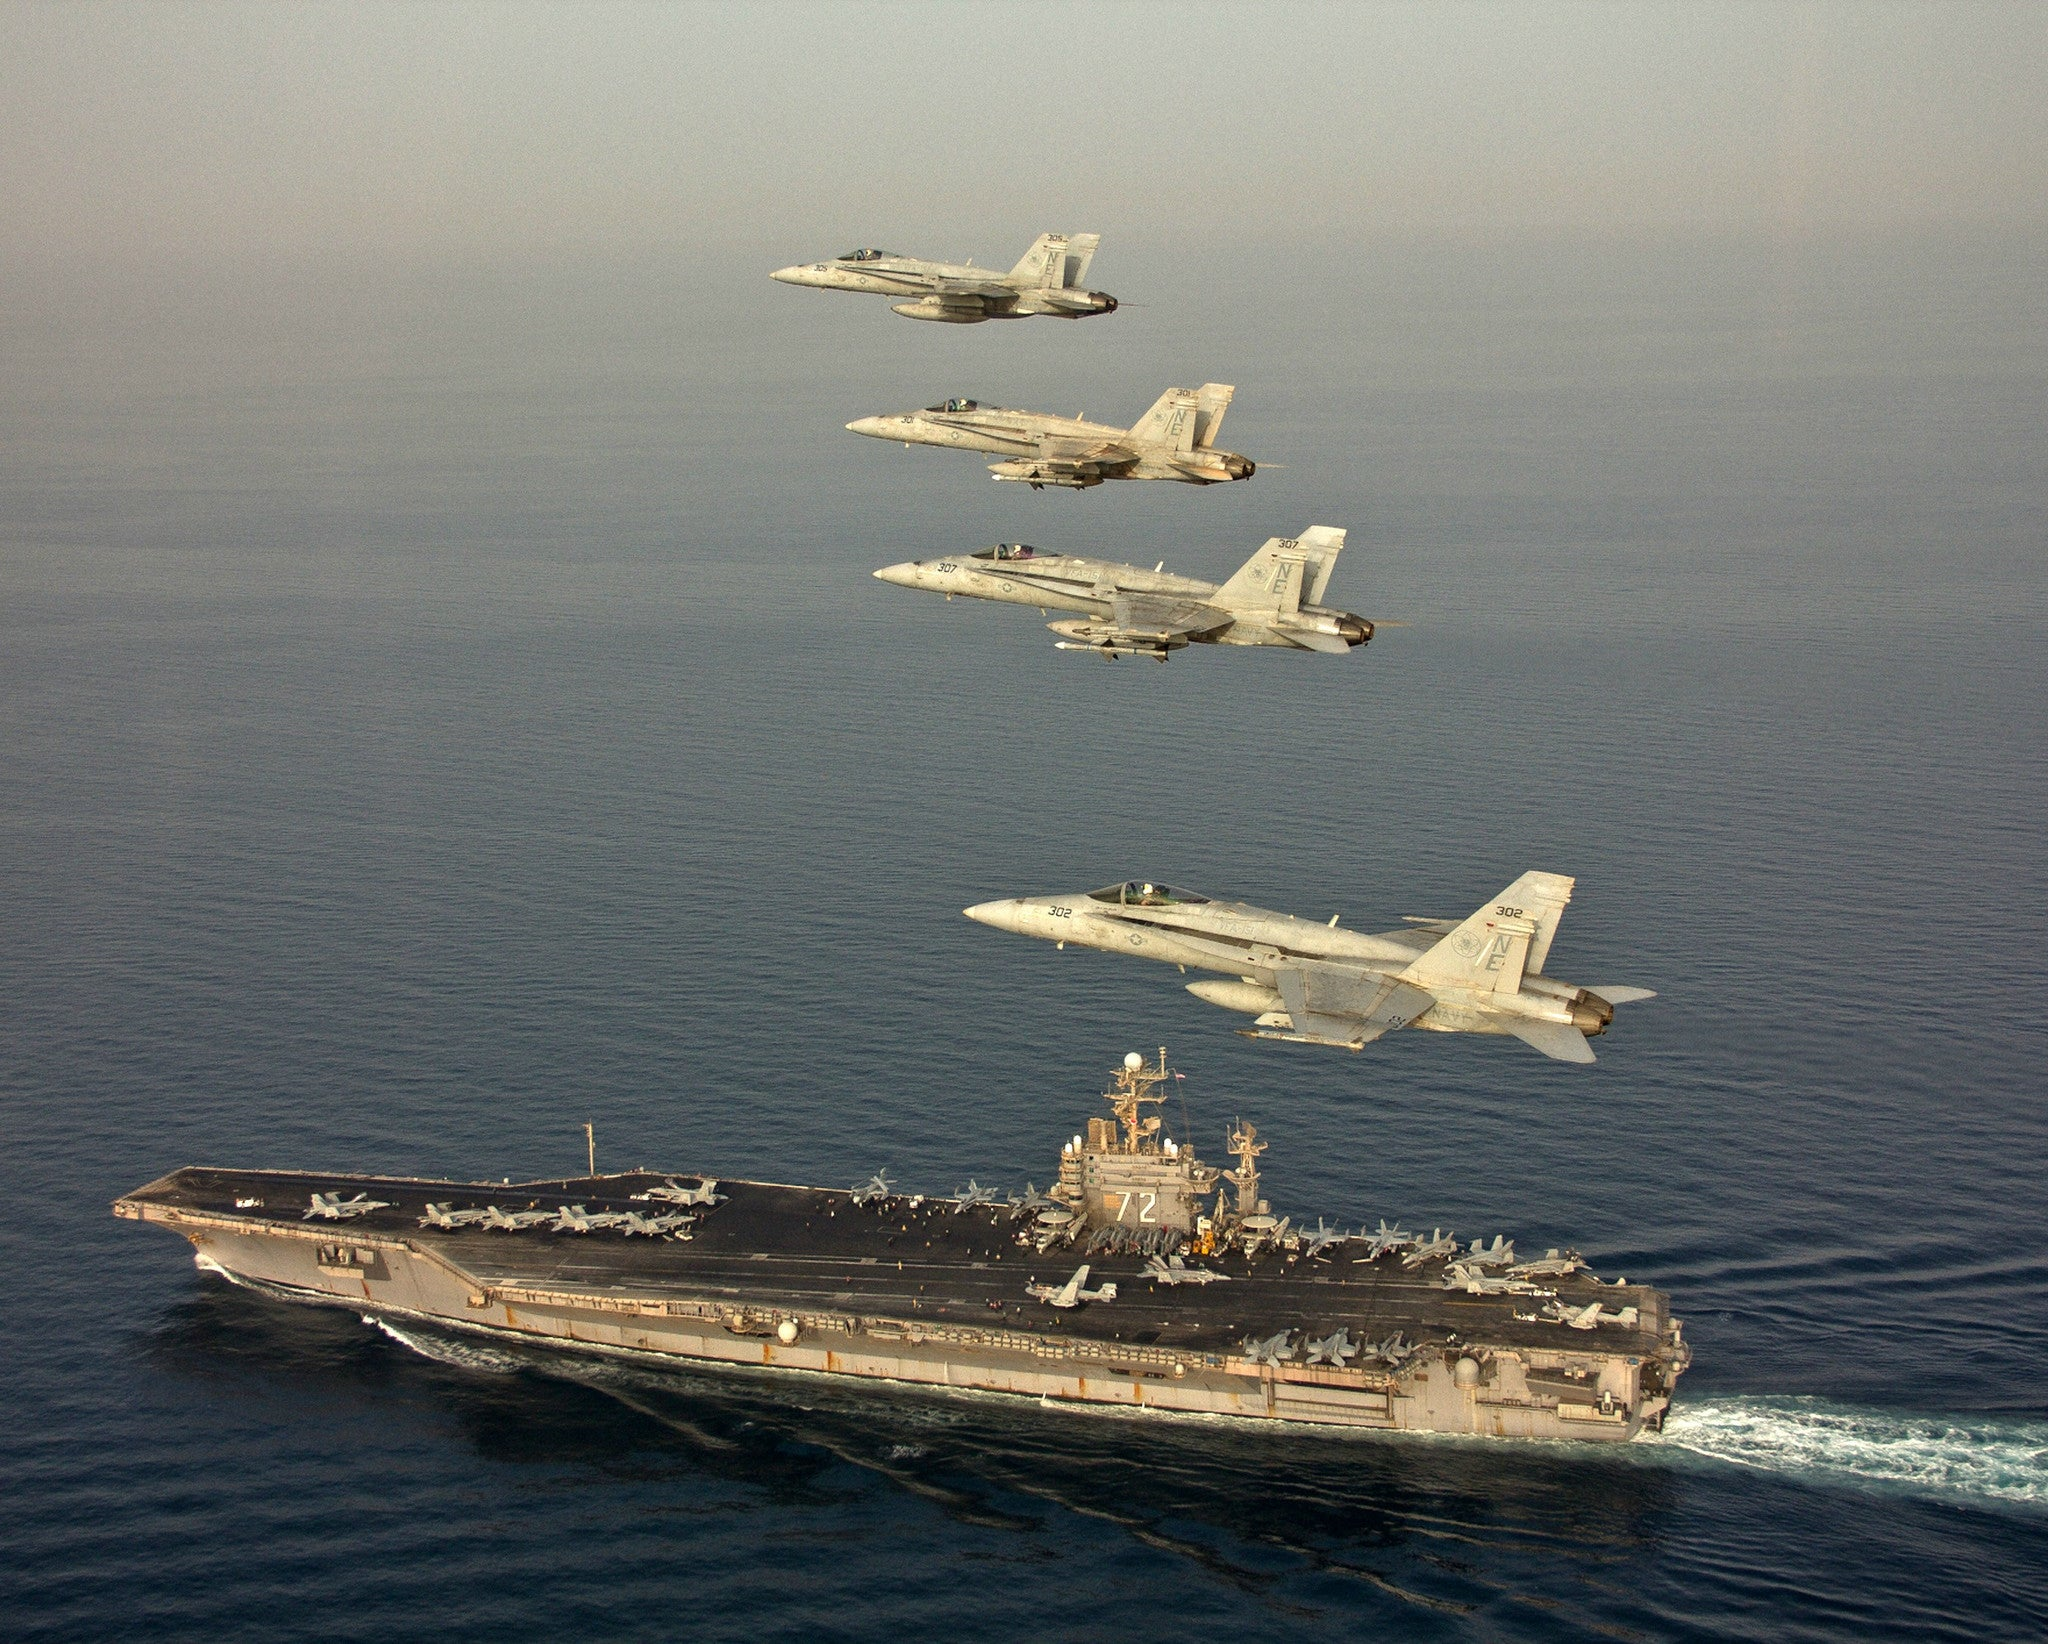 "F/A-18C Hornets Vigilantes of Strike Fighter Squadron (VFA) 151 USS Abraham Lincoln CVN-72 Arabian Sea March 20, 2012 - 8 x 10"" Photograph"